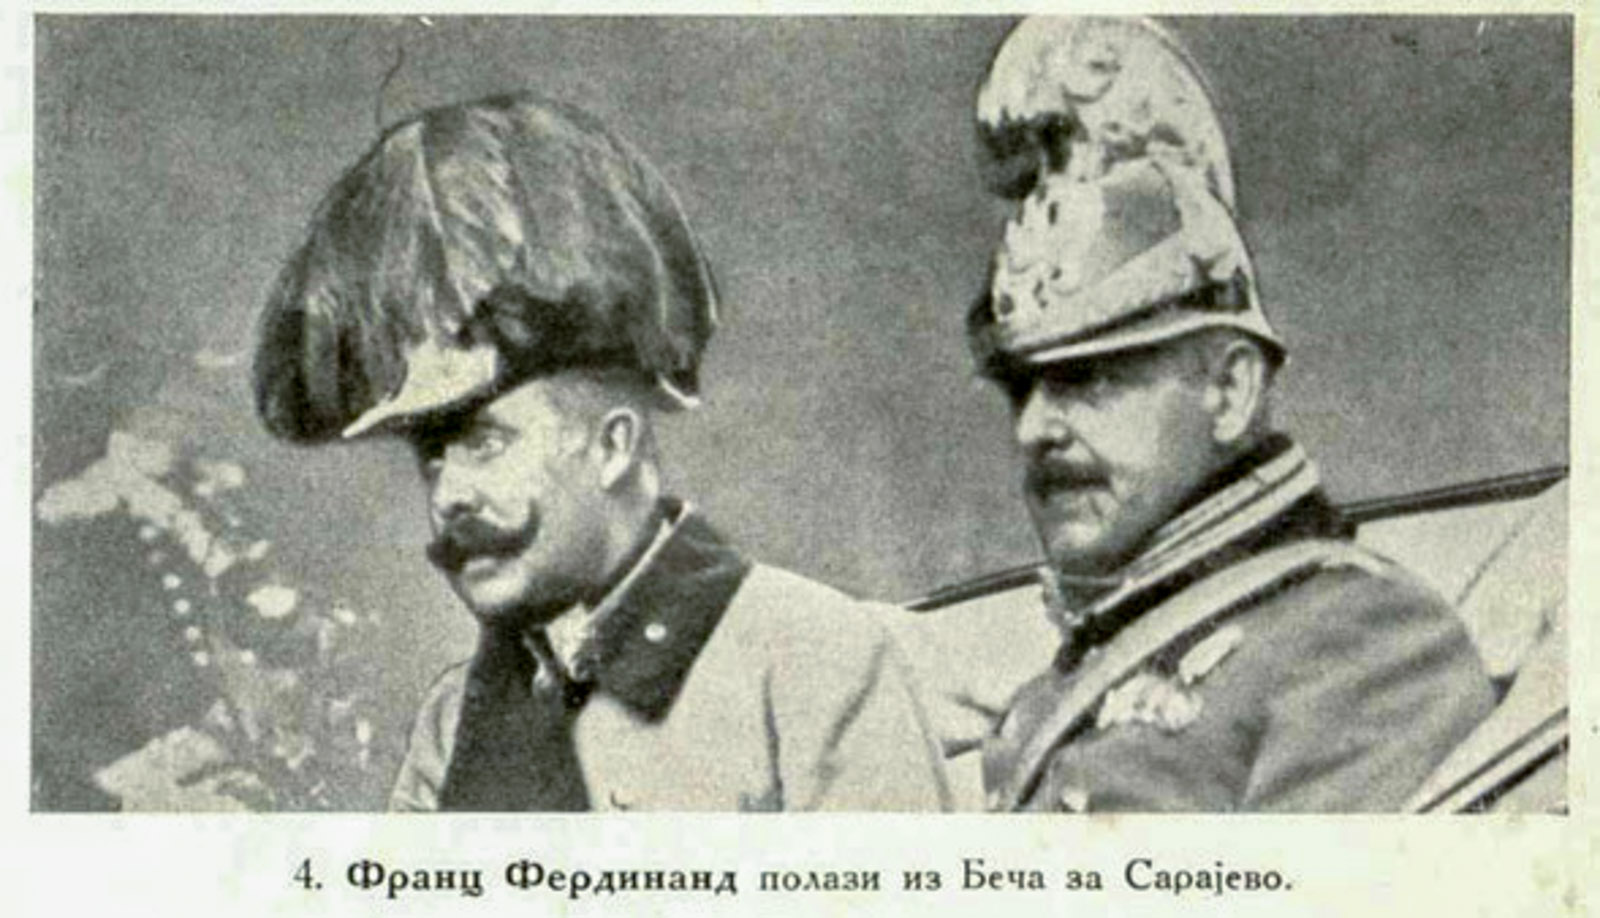 Franz Ferdinand's Assassination: 5 Facts You Need to Know